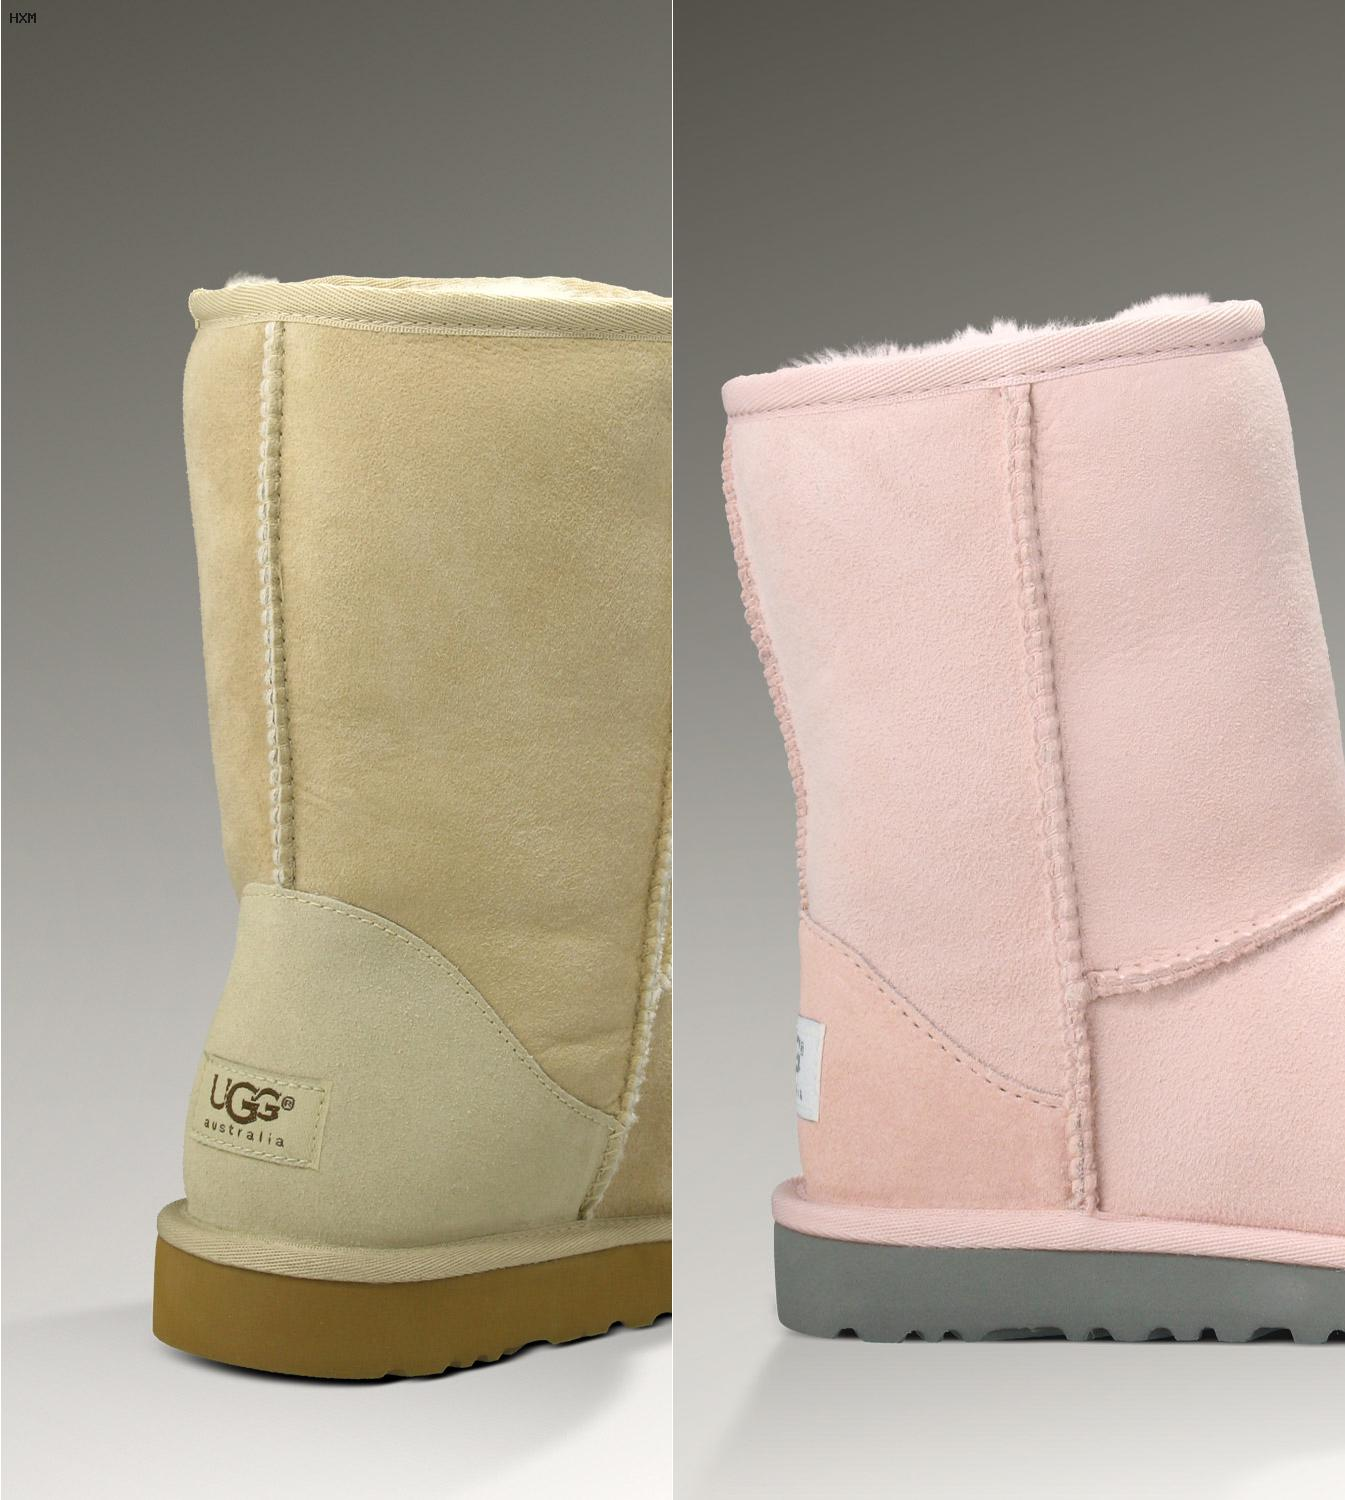 vente privee botte ugg